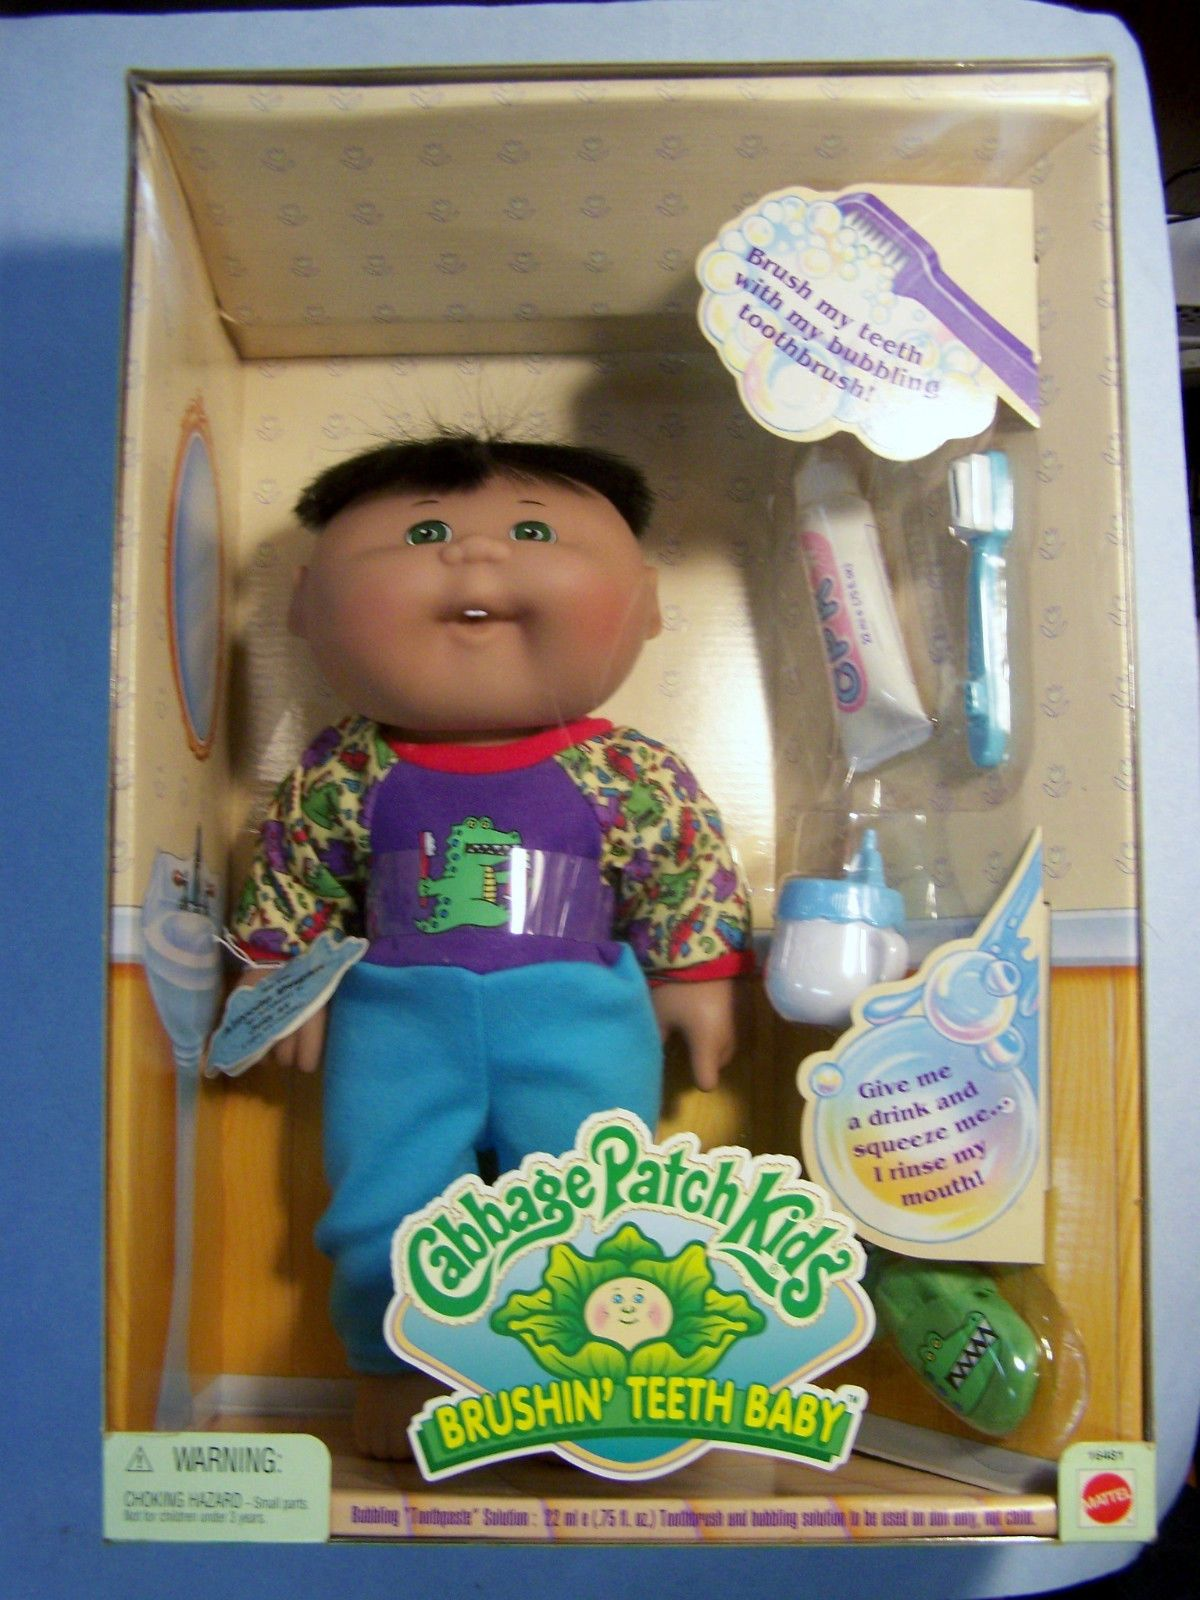 1997 Brushin Teeth Baby Cabbage Patch Dolls Pajamas Toothbrush Cabbage Patch Babies Cabbage Patch Dolls Cabbage Patch Kids